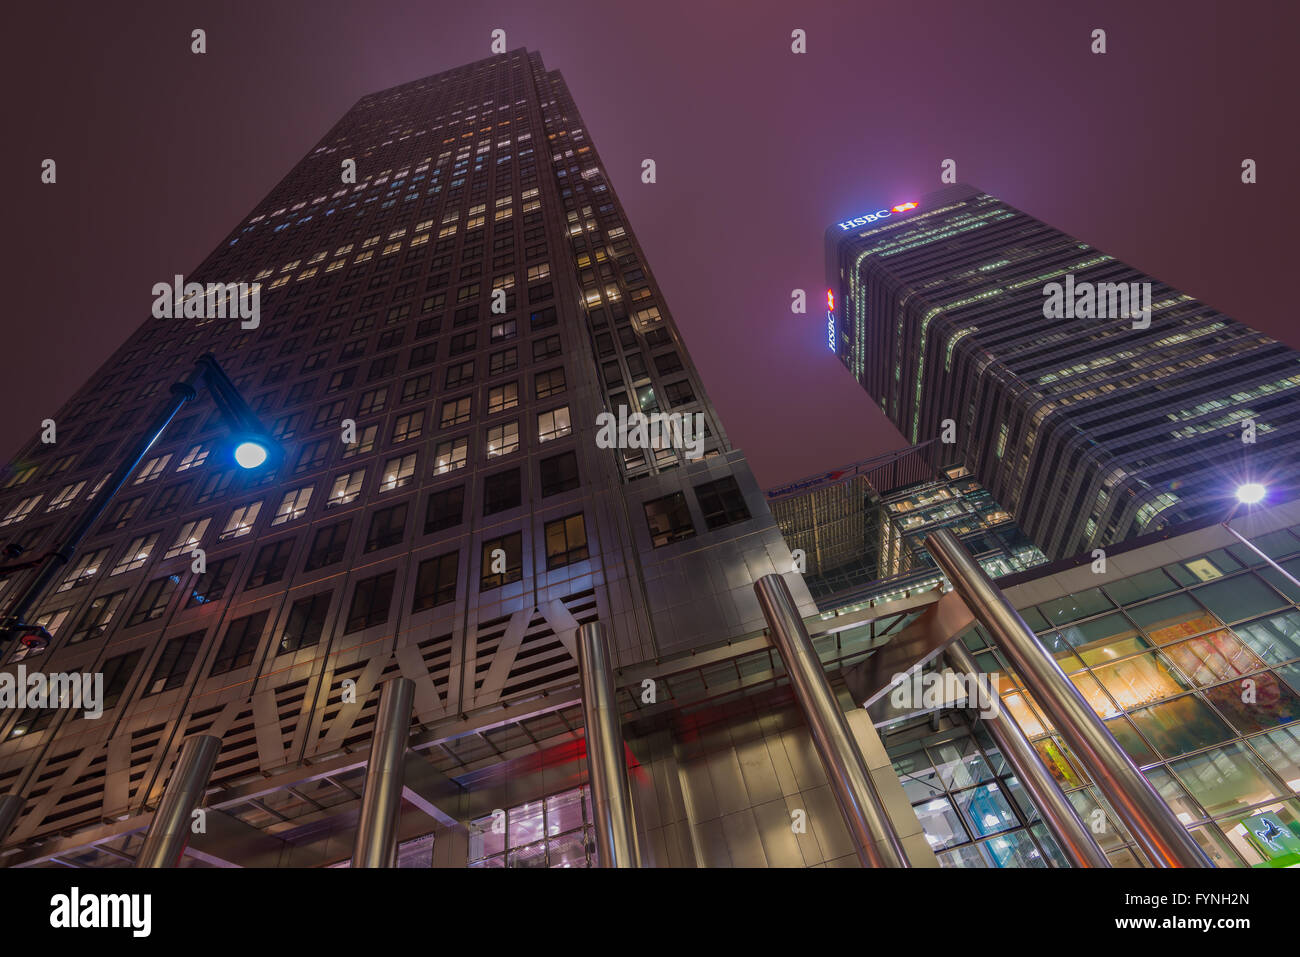 Office buildings in Canary Wharf, London, United Kingdom - Stock Image